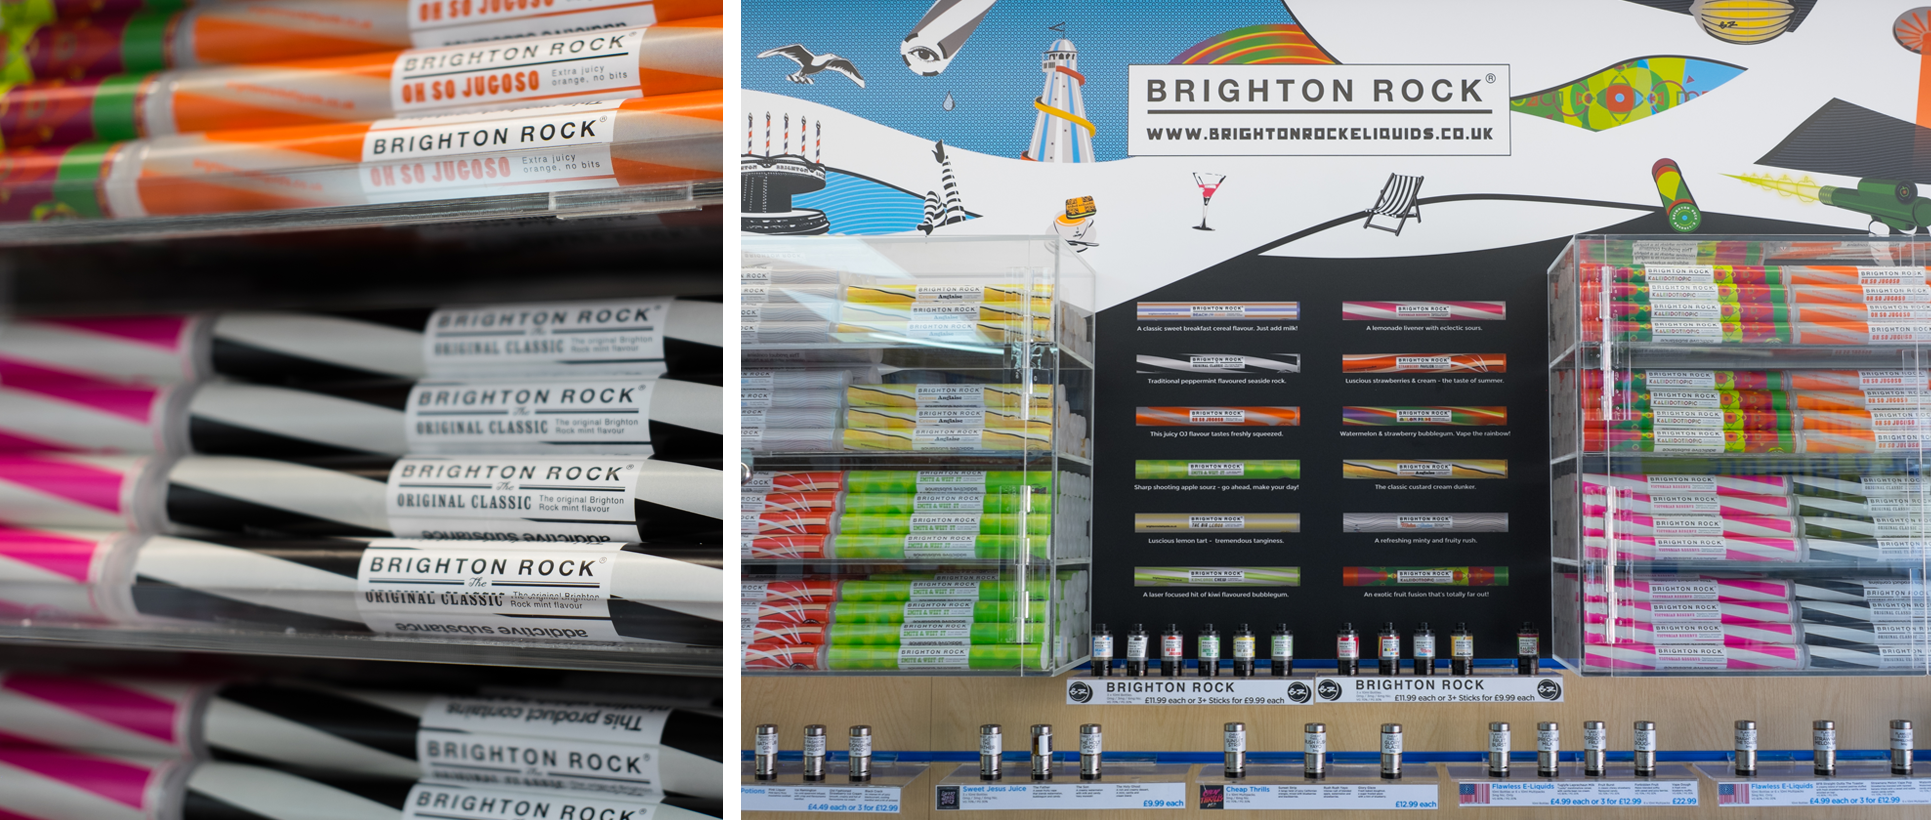 Vape UK's Brighton Rock e-Liquid range